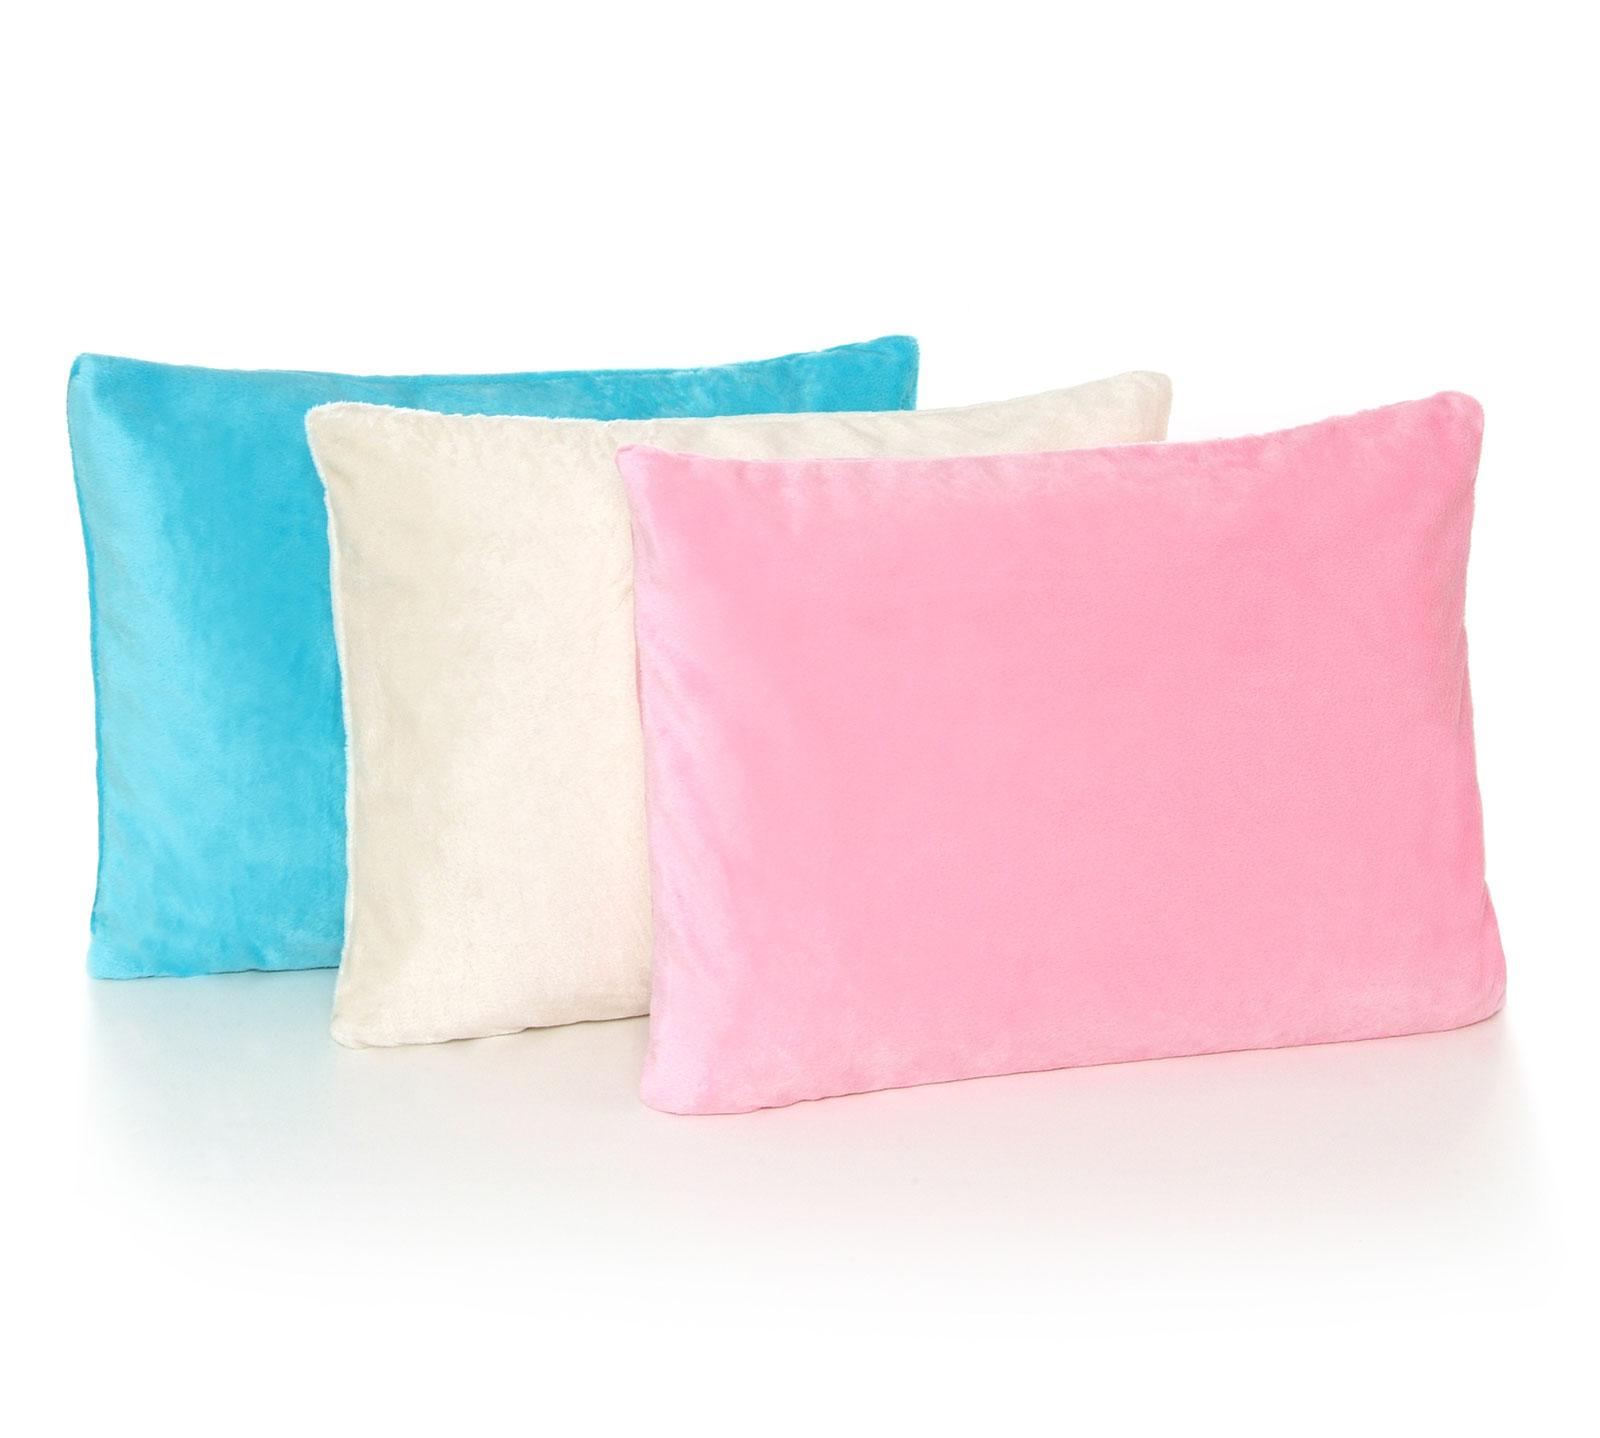 Pink My First Memory Foam Toddler Pillow with Matching Pillow Case